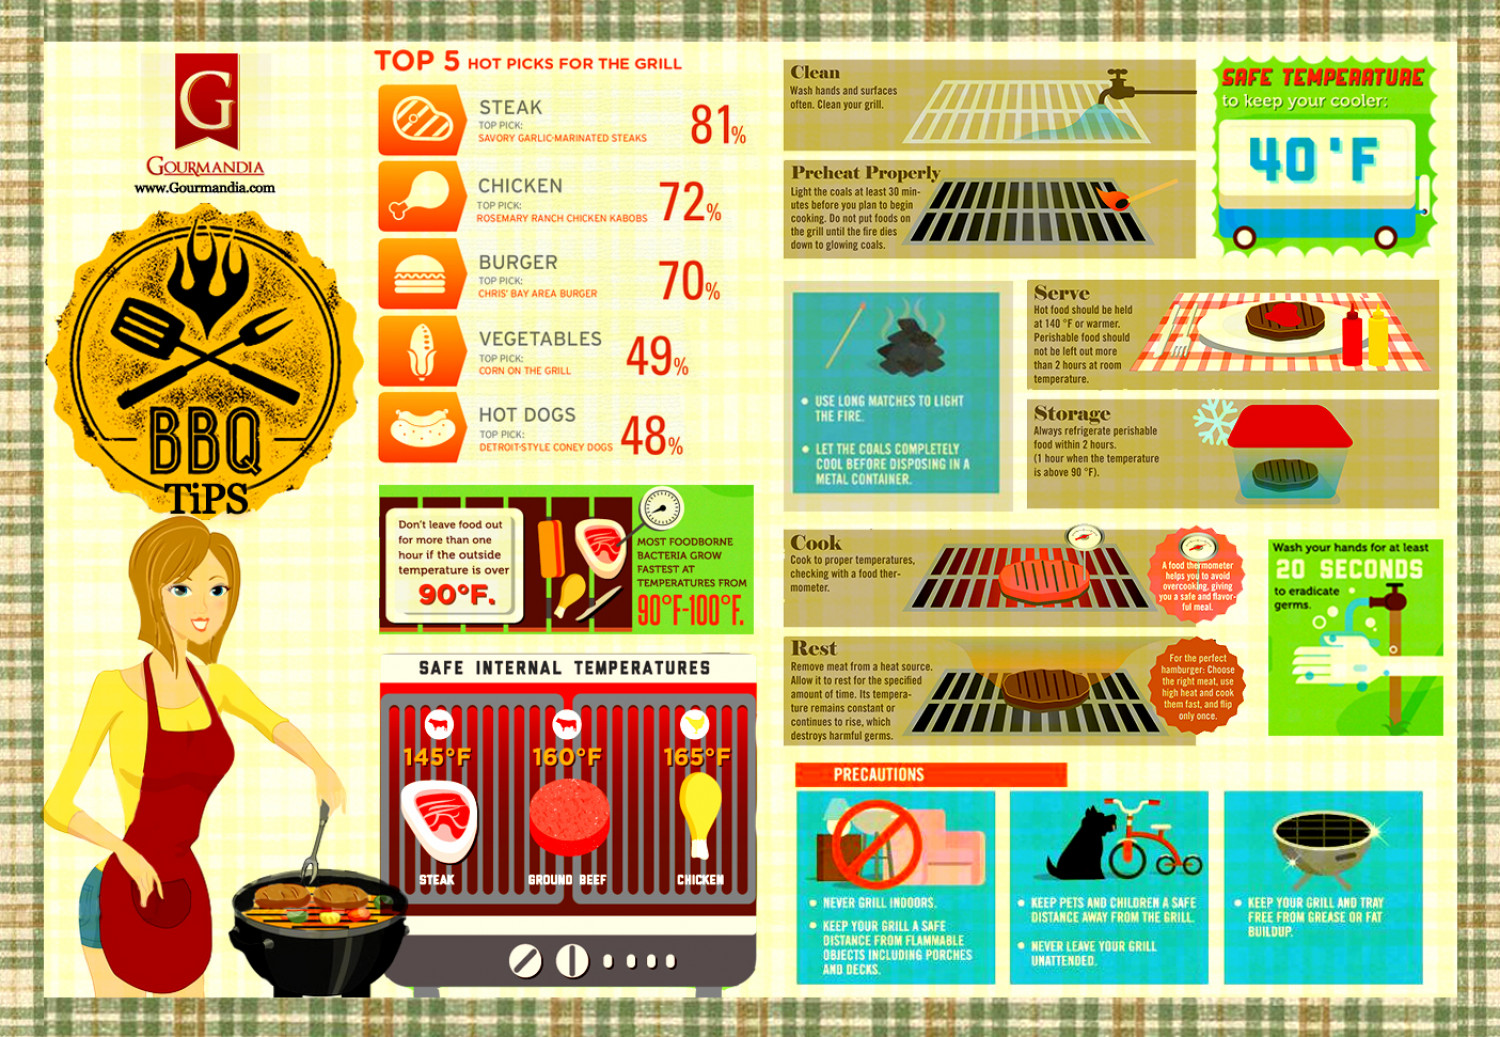 Barbecue Tips Infographic